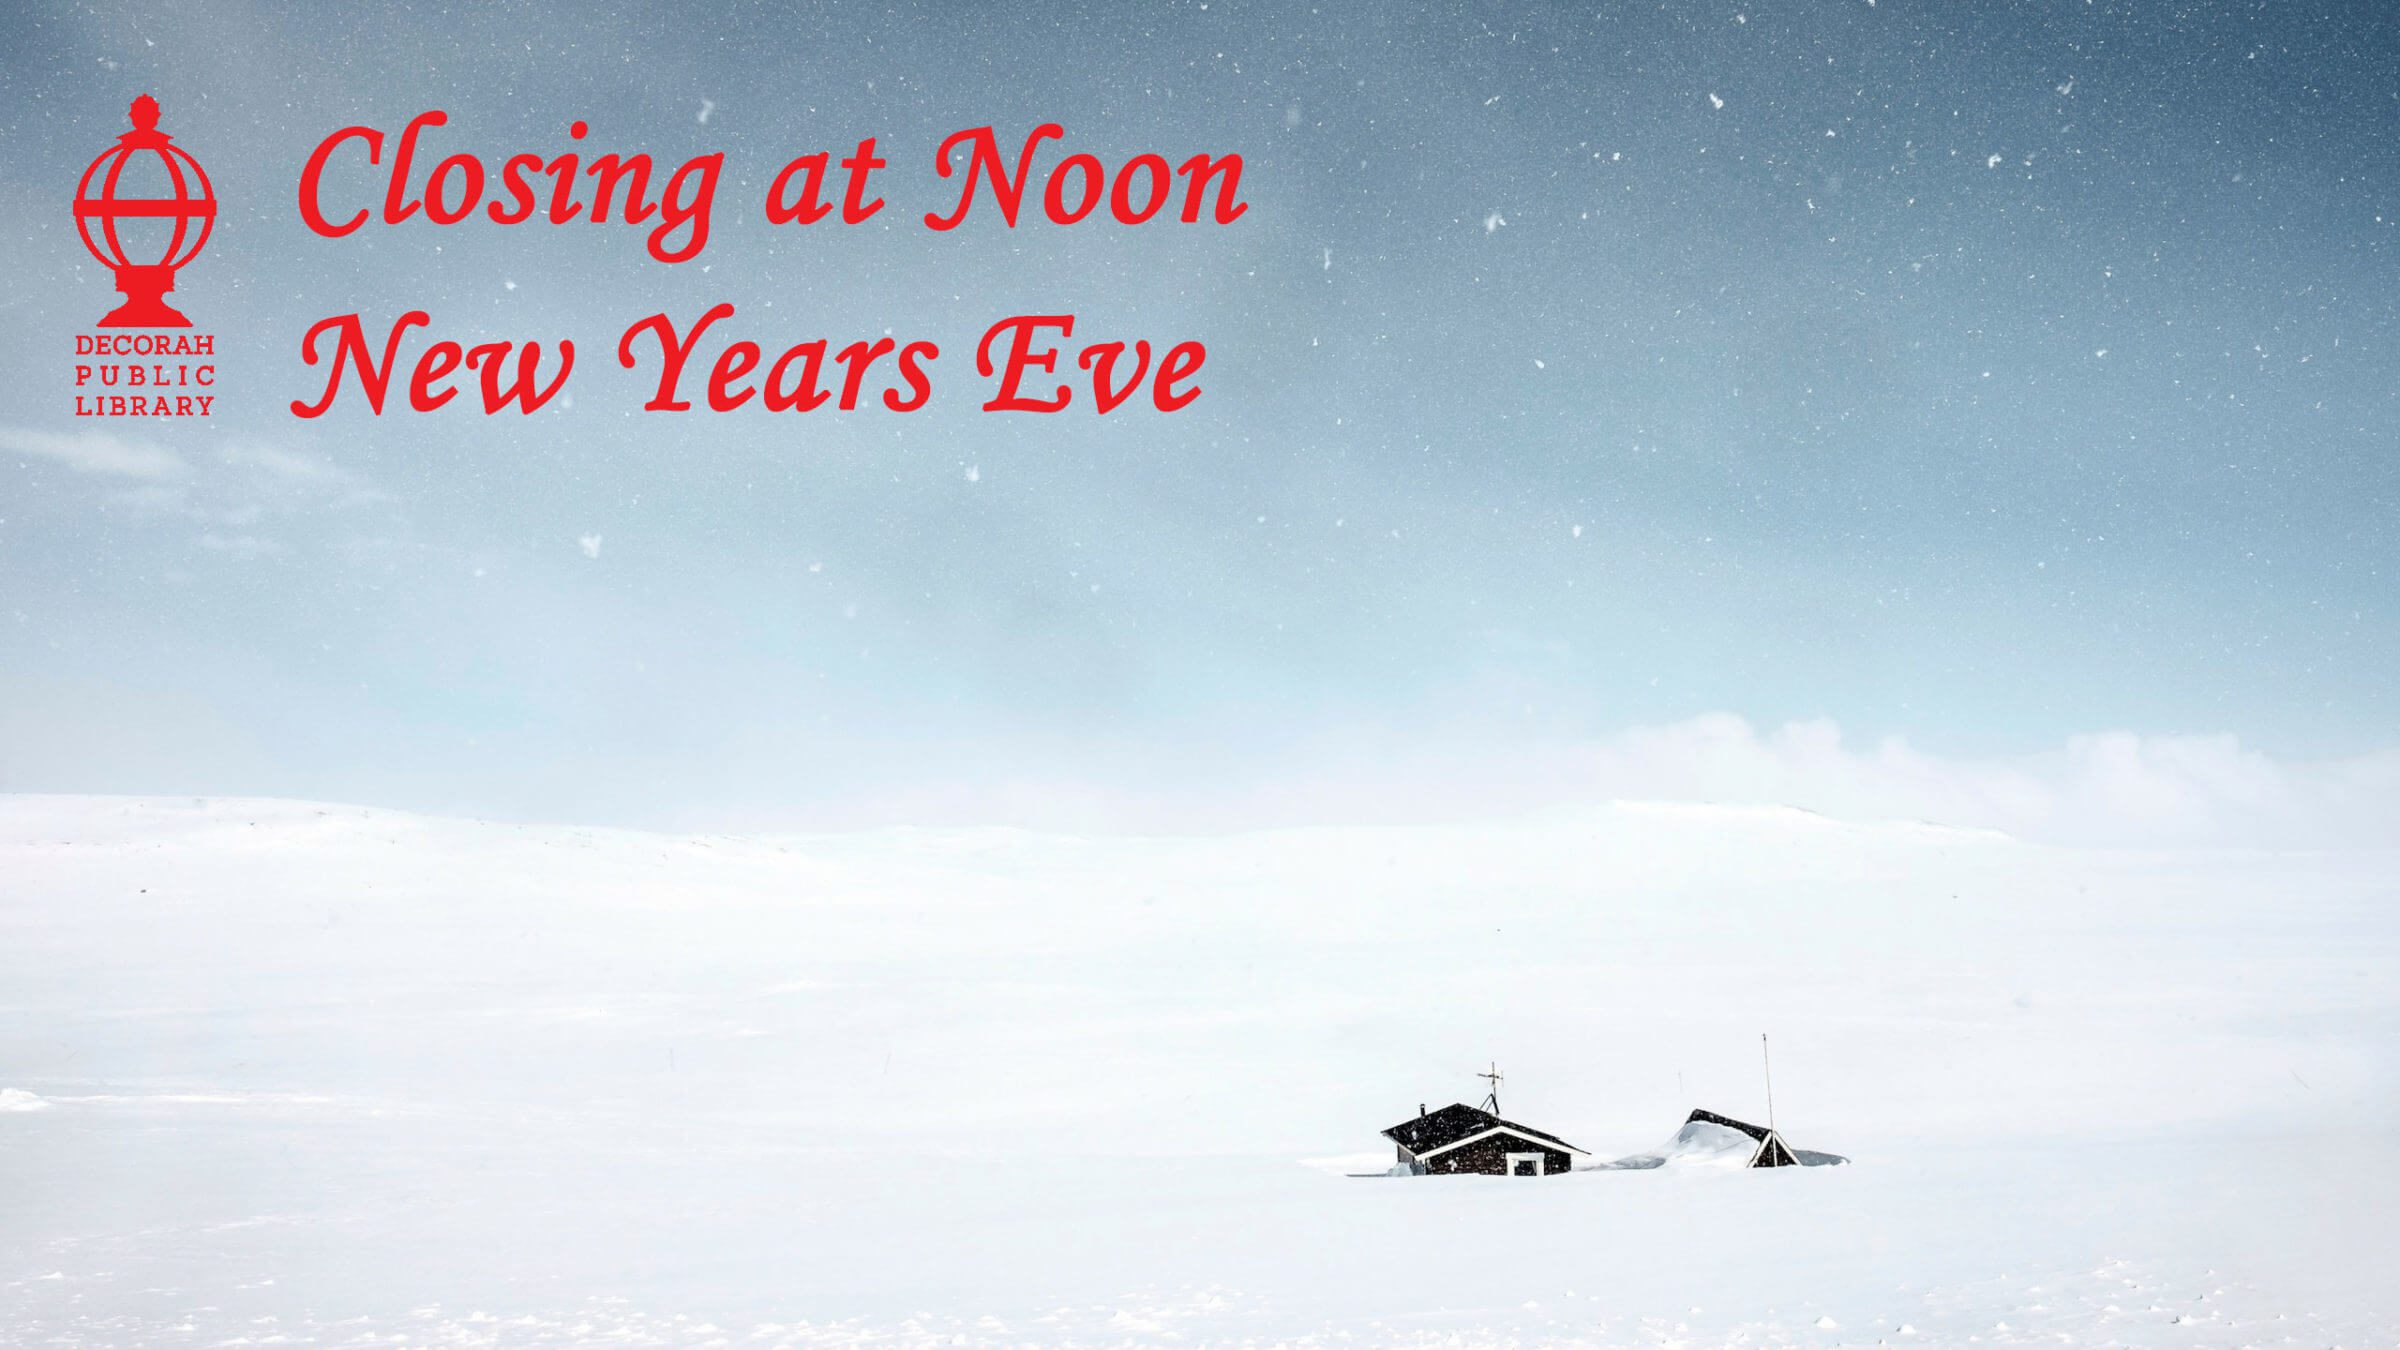 Closing at Noon New Years Eve